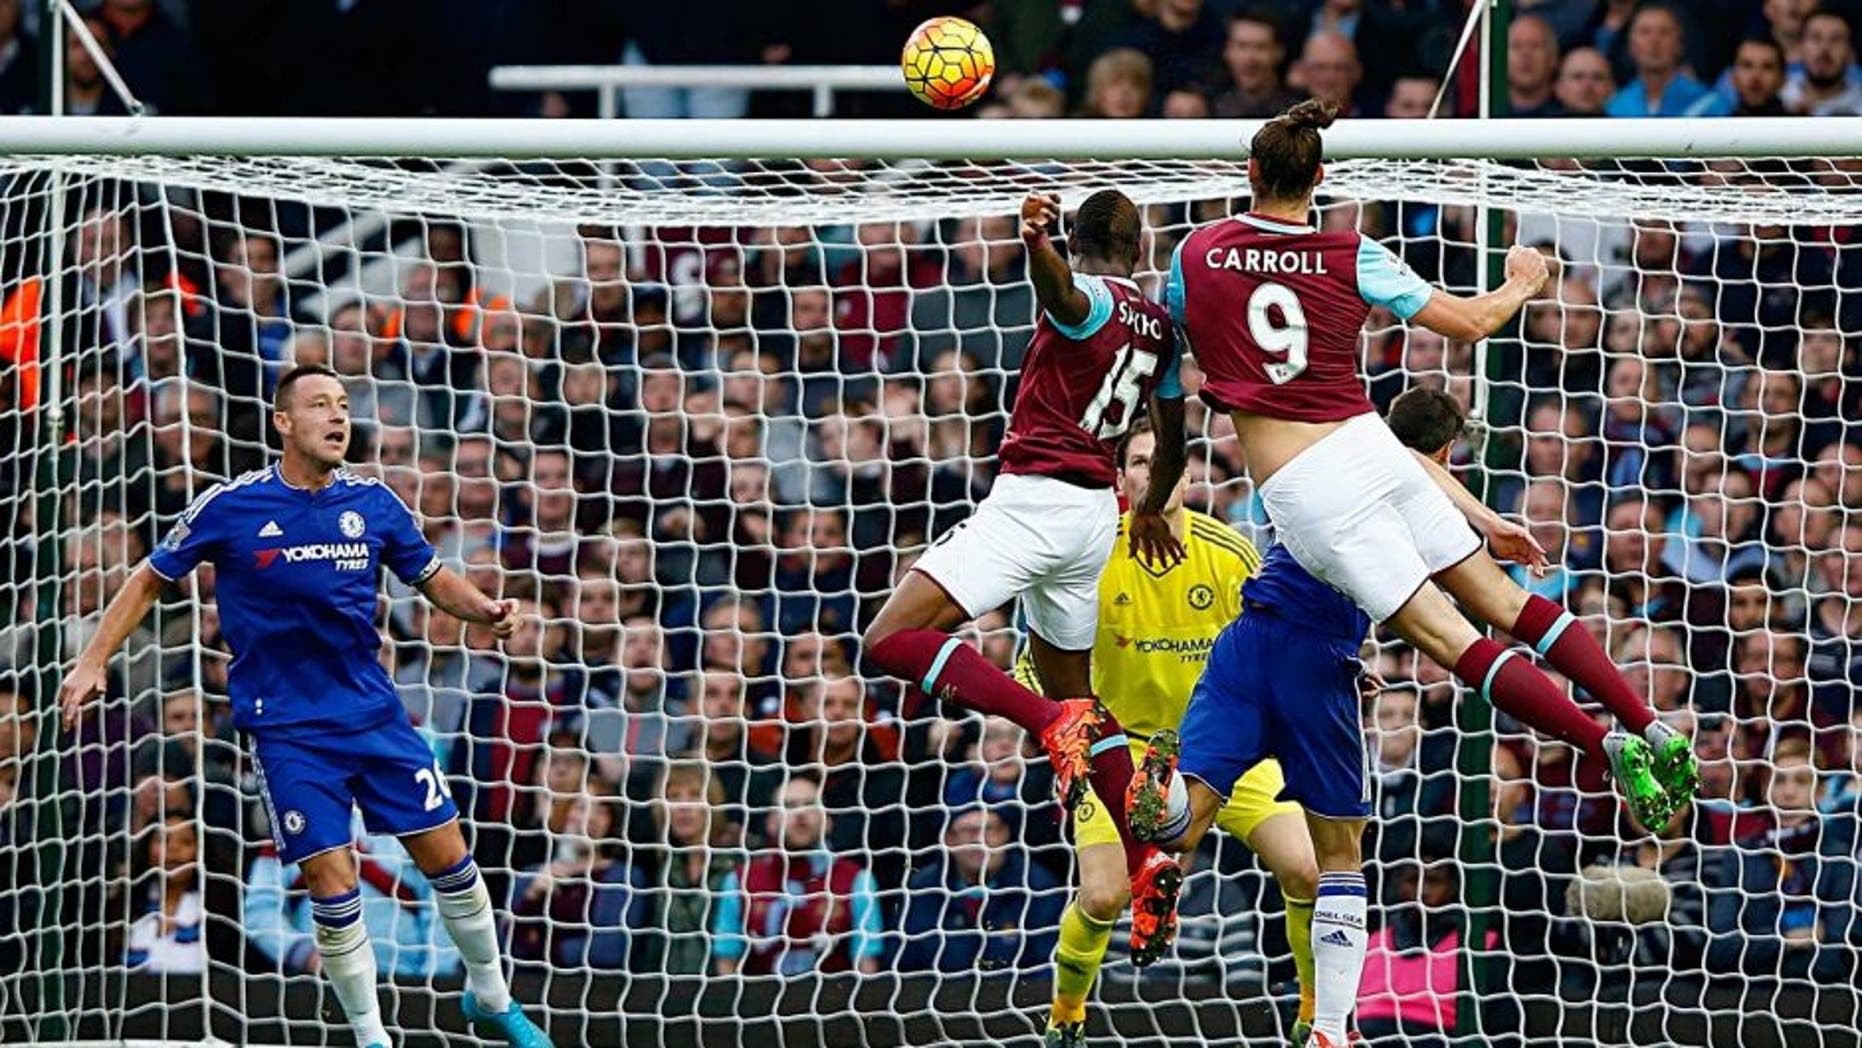 LONDON, ENGLAND - OCTOBER 24: Andy Carroll #9 of West Ham United scores his team's second goal during the Barclays Premier League match between West Ham United and Chelsea at Boleyn Ground on October 24, 2015 in London, England. (Photo by Clive Rose/Getty Images)